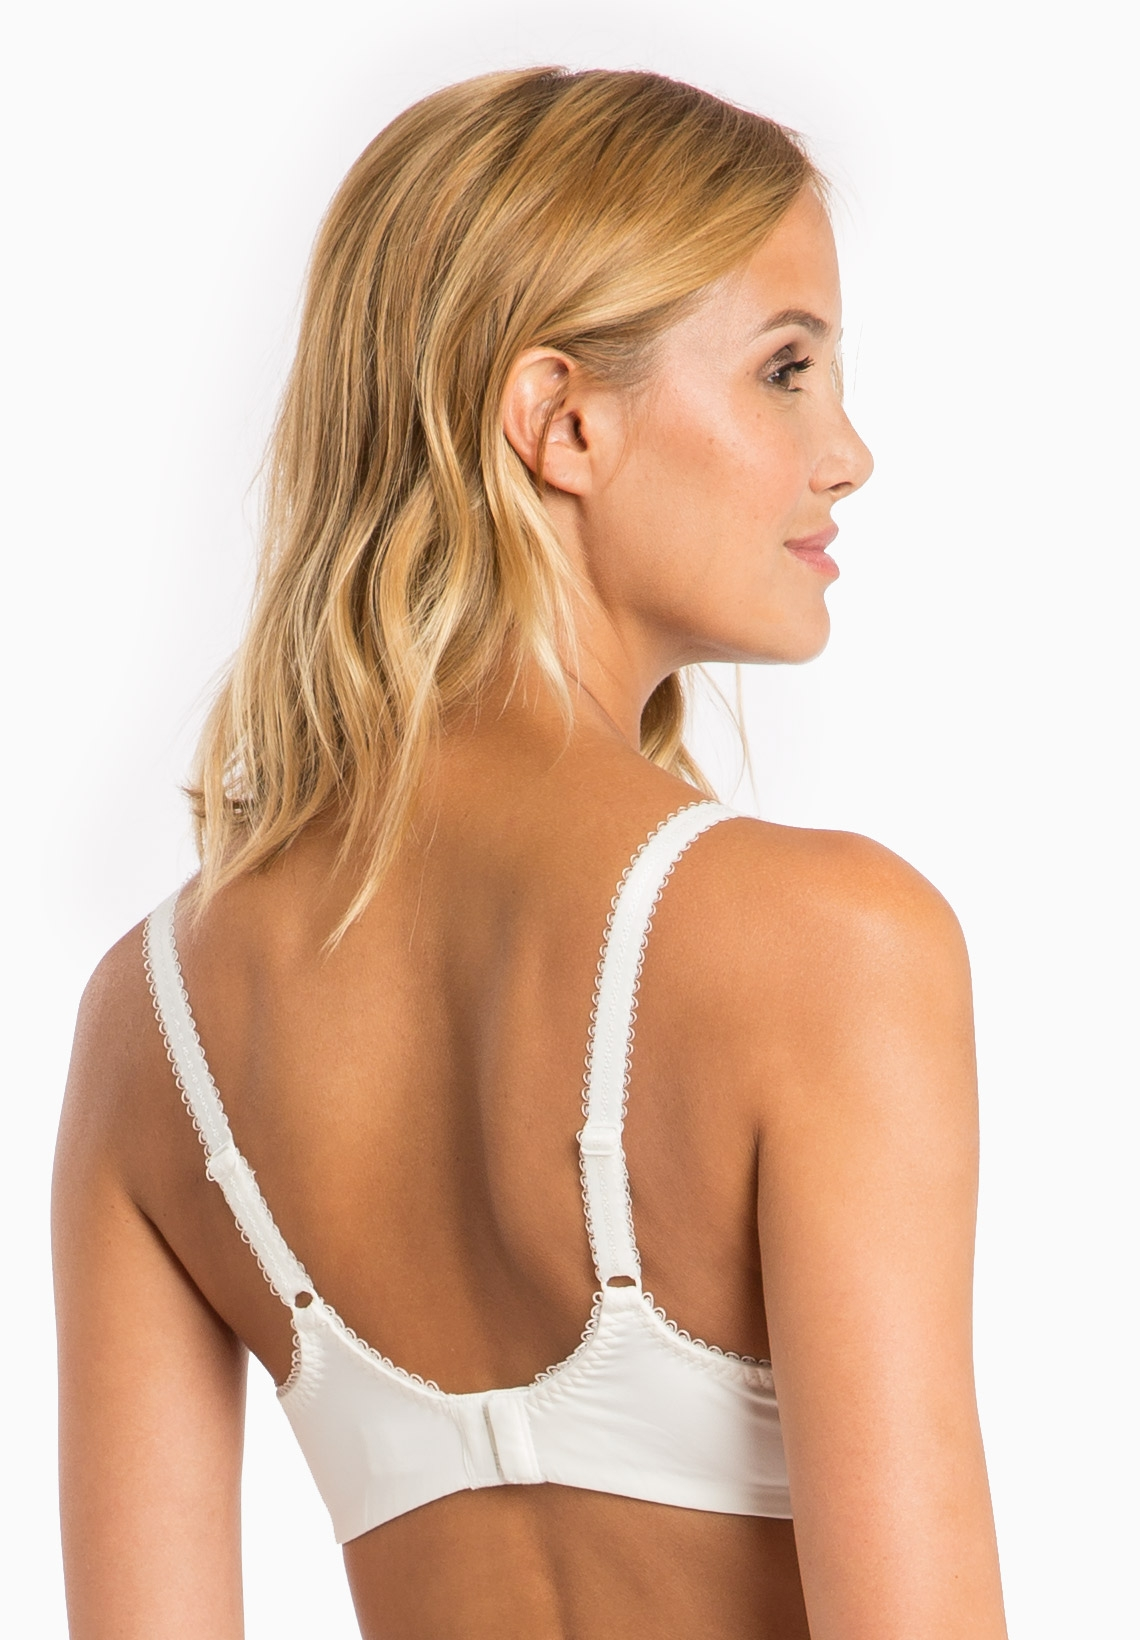 This nursing bra is the Audi/BMW of nursing bras! It is comfortable, excellent quality and has a nice smooth and rounded cup on top of looking sexy. I am a 40 H and it is the best fitting nursing bra I have bought out of the 15 bras I have purchased and tried.